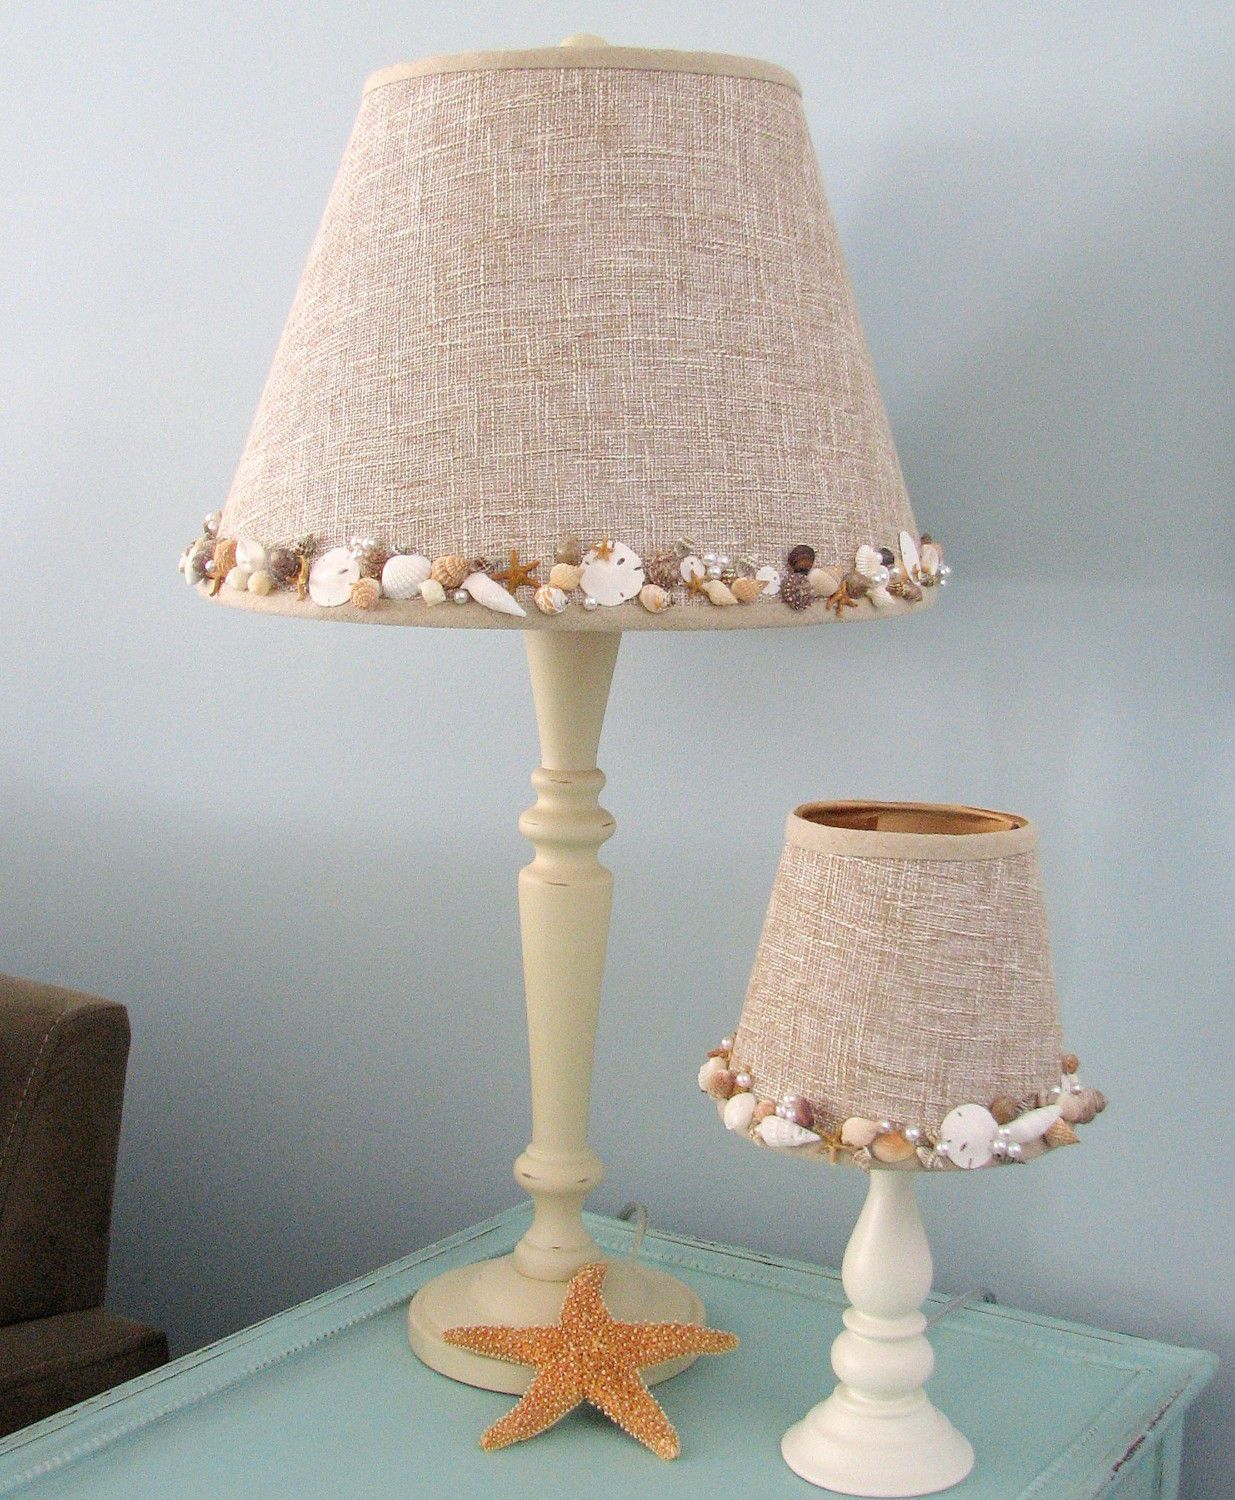 Space Themed Lamp Seashell Lamp With Artisan Embellished Shade Maybe Diy